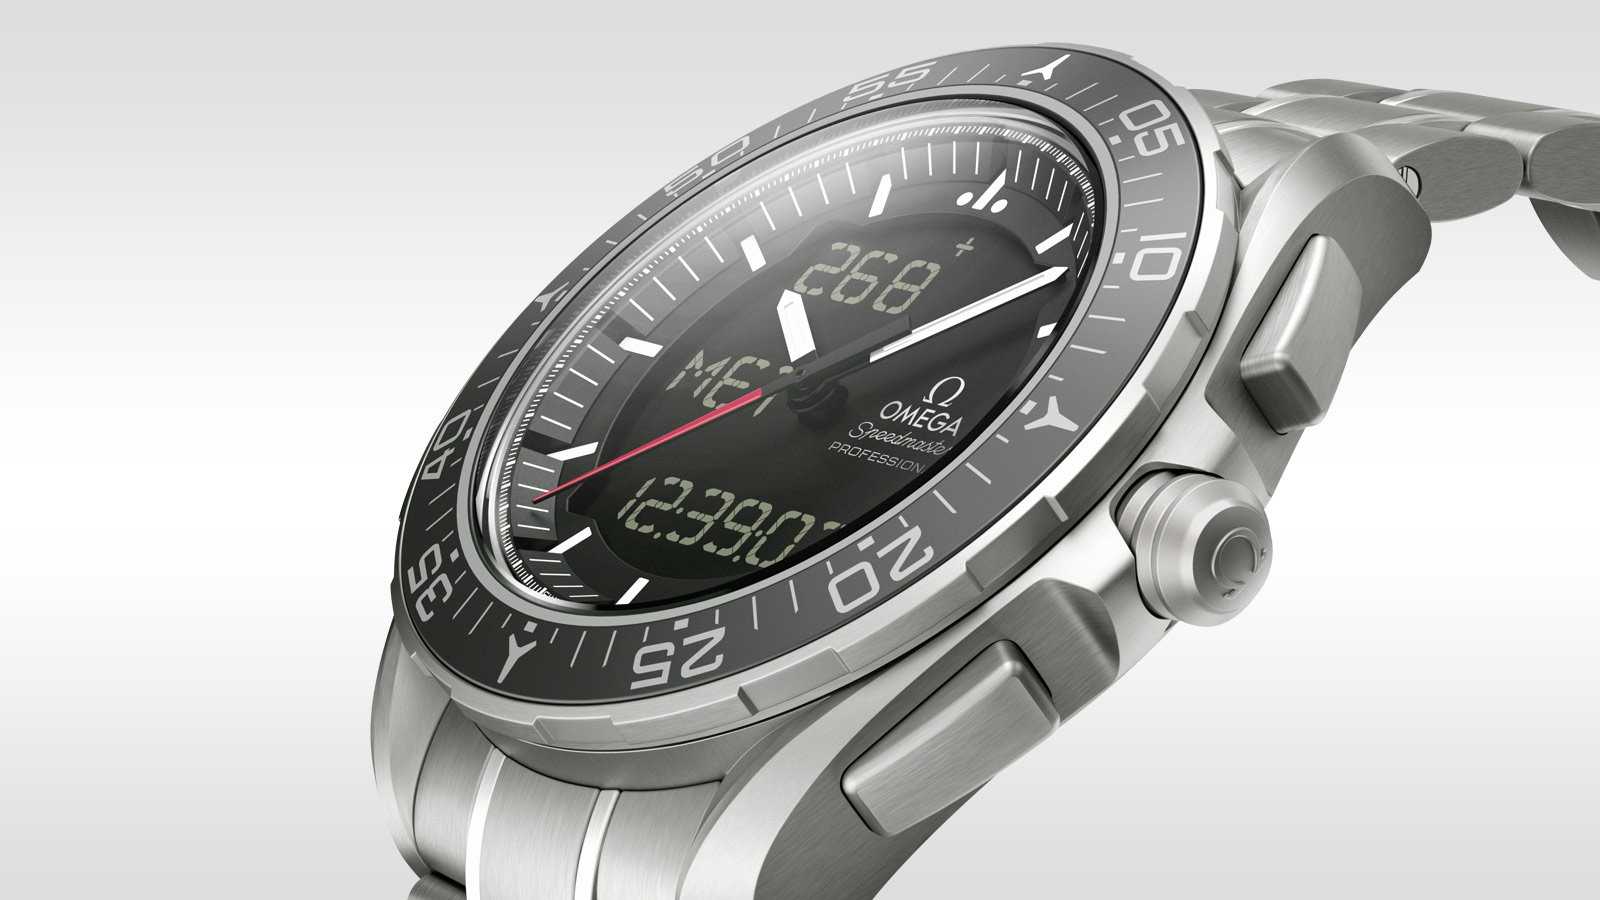 Speedmaster スカイウォーカー X‑33 Skywalker X‑33 Chronograph 45 mm - 318.90.45.79.01.001 - ビュー 1